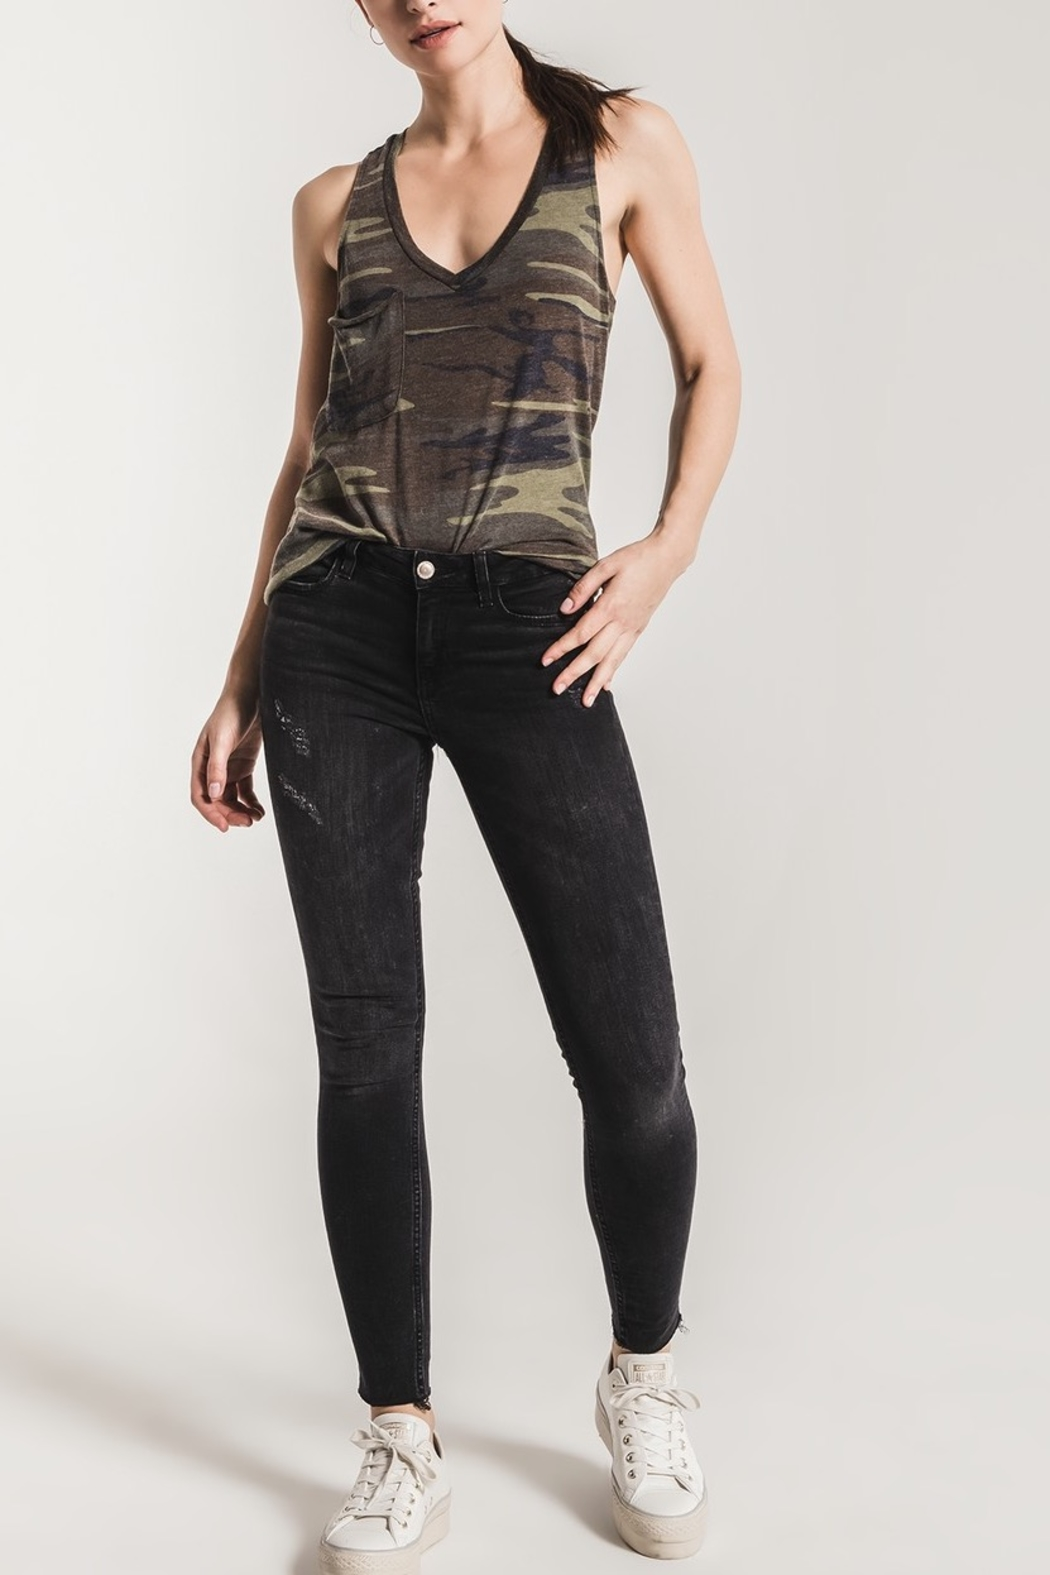 z supply Camo Racer Tank - Front Cropped Image